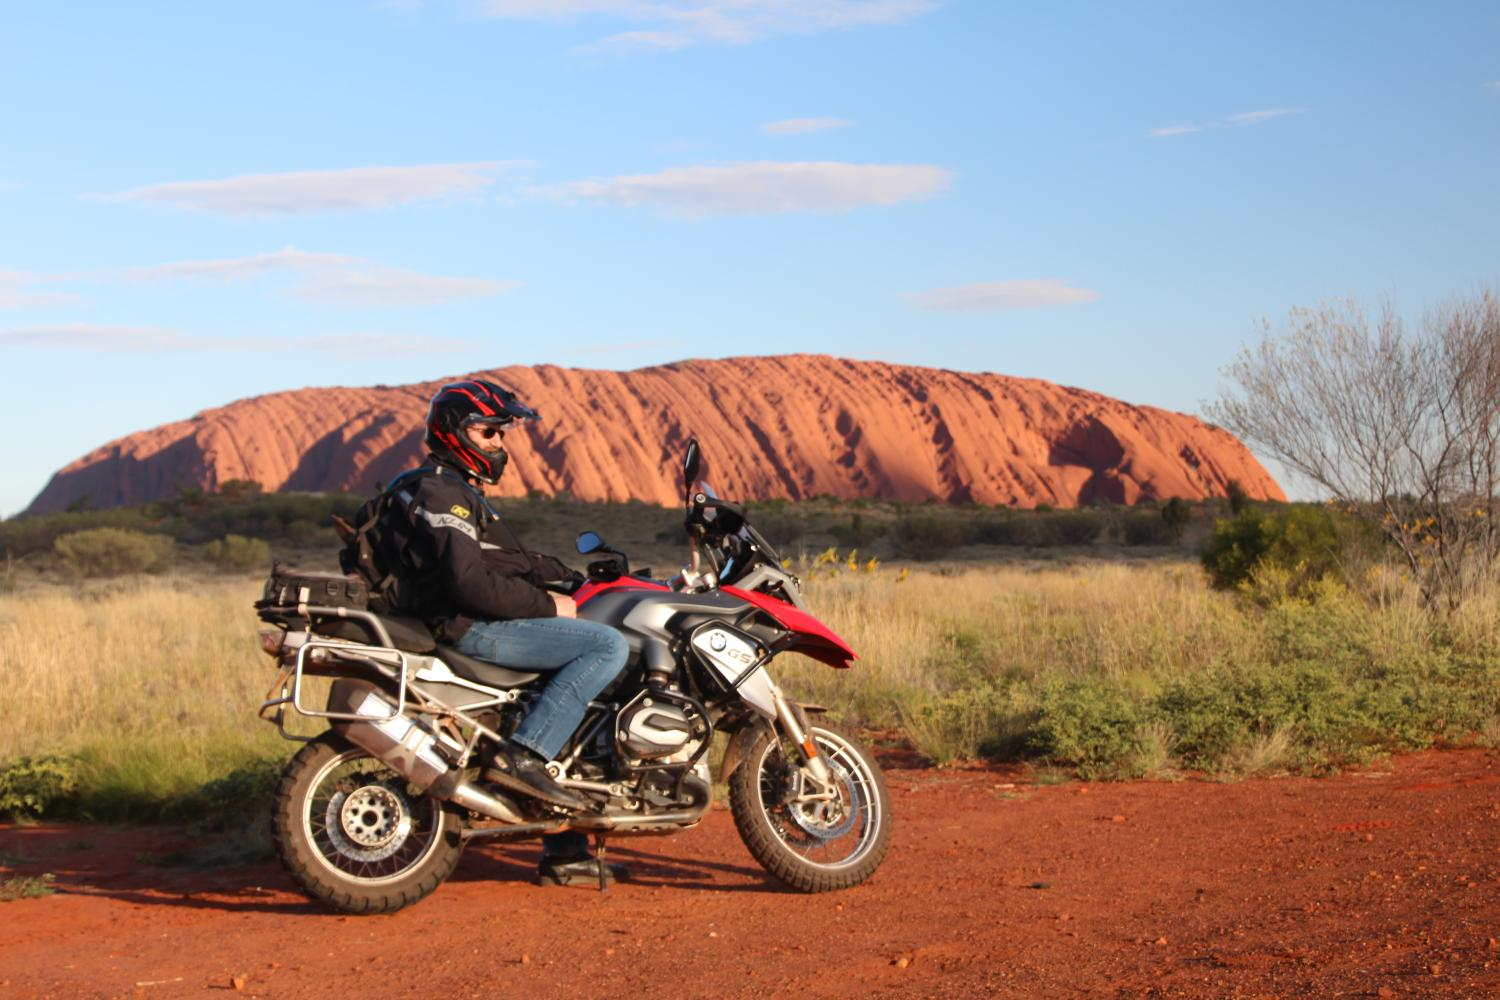 Iconic Australia Motorcycle Tour